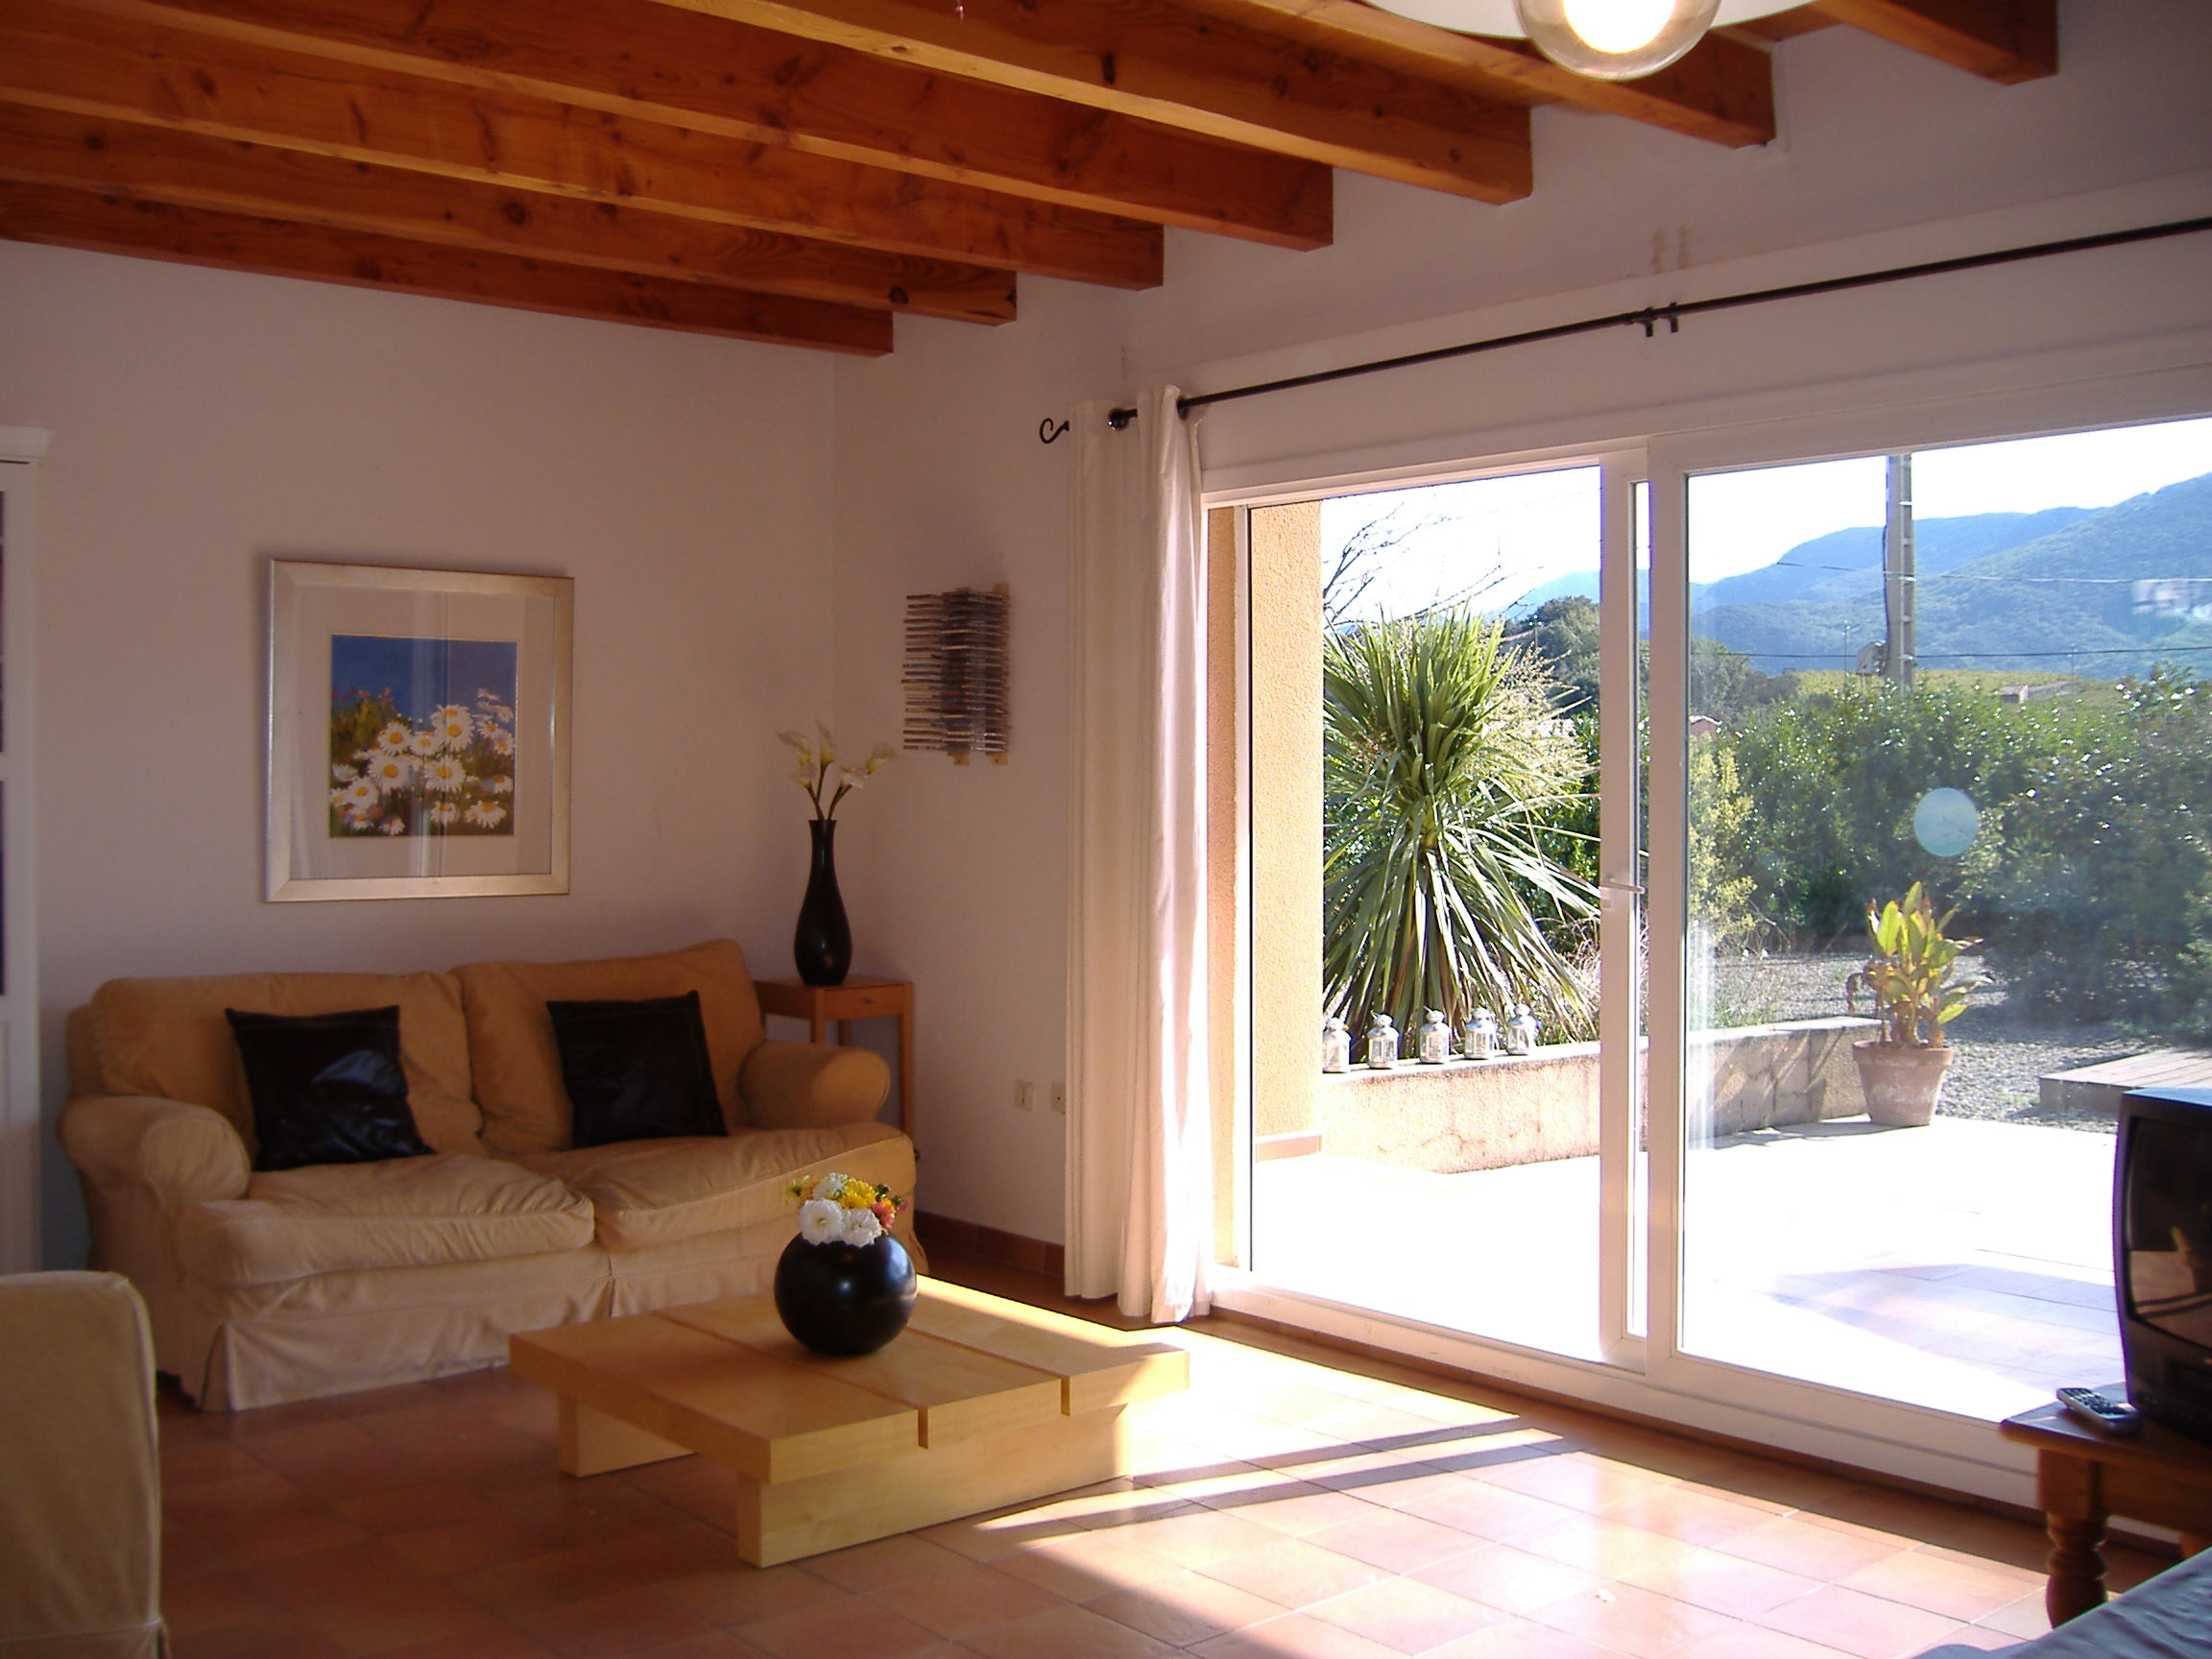 Siesta-styled room with Patio door